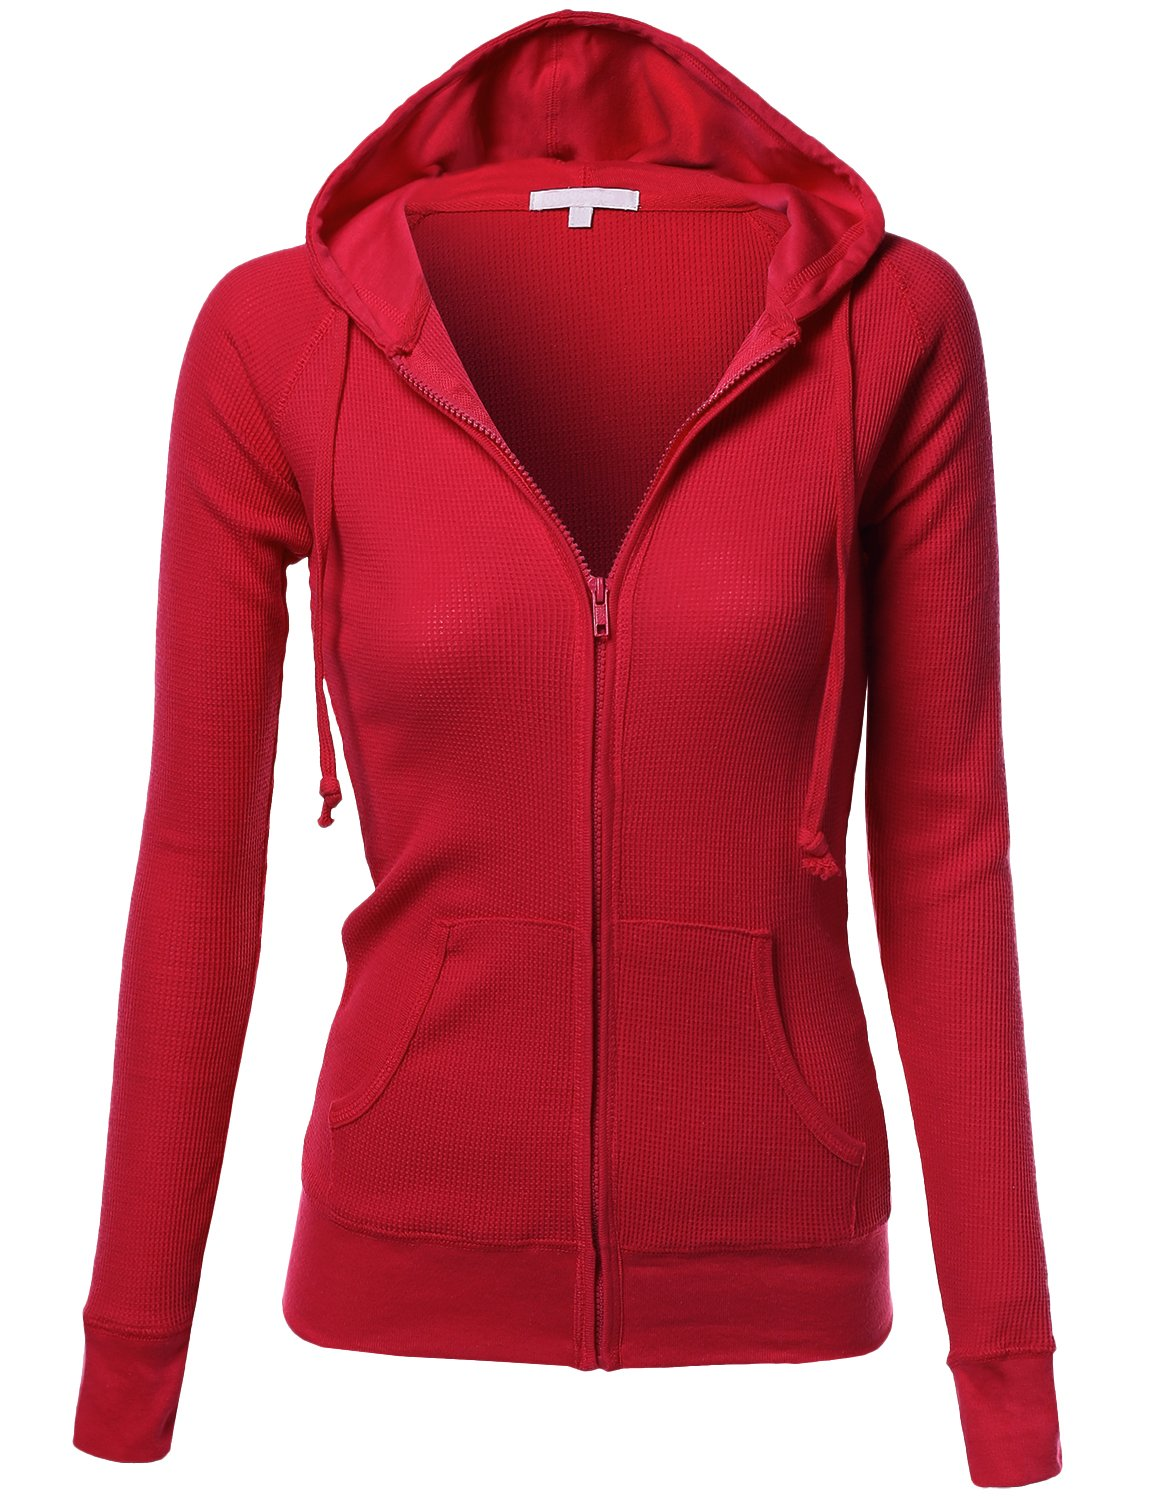 Xpril Basic Slim Fit Lightweight Zipper Drawstring Hooded Jackets Red Size S